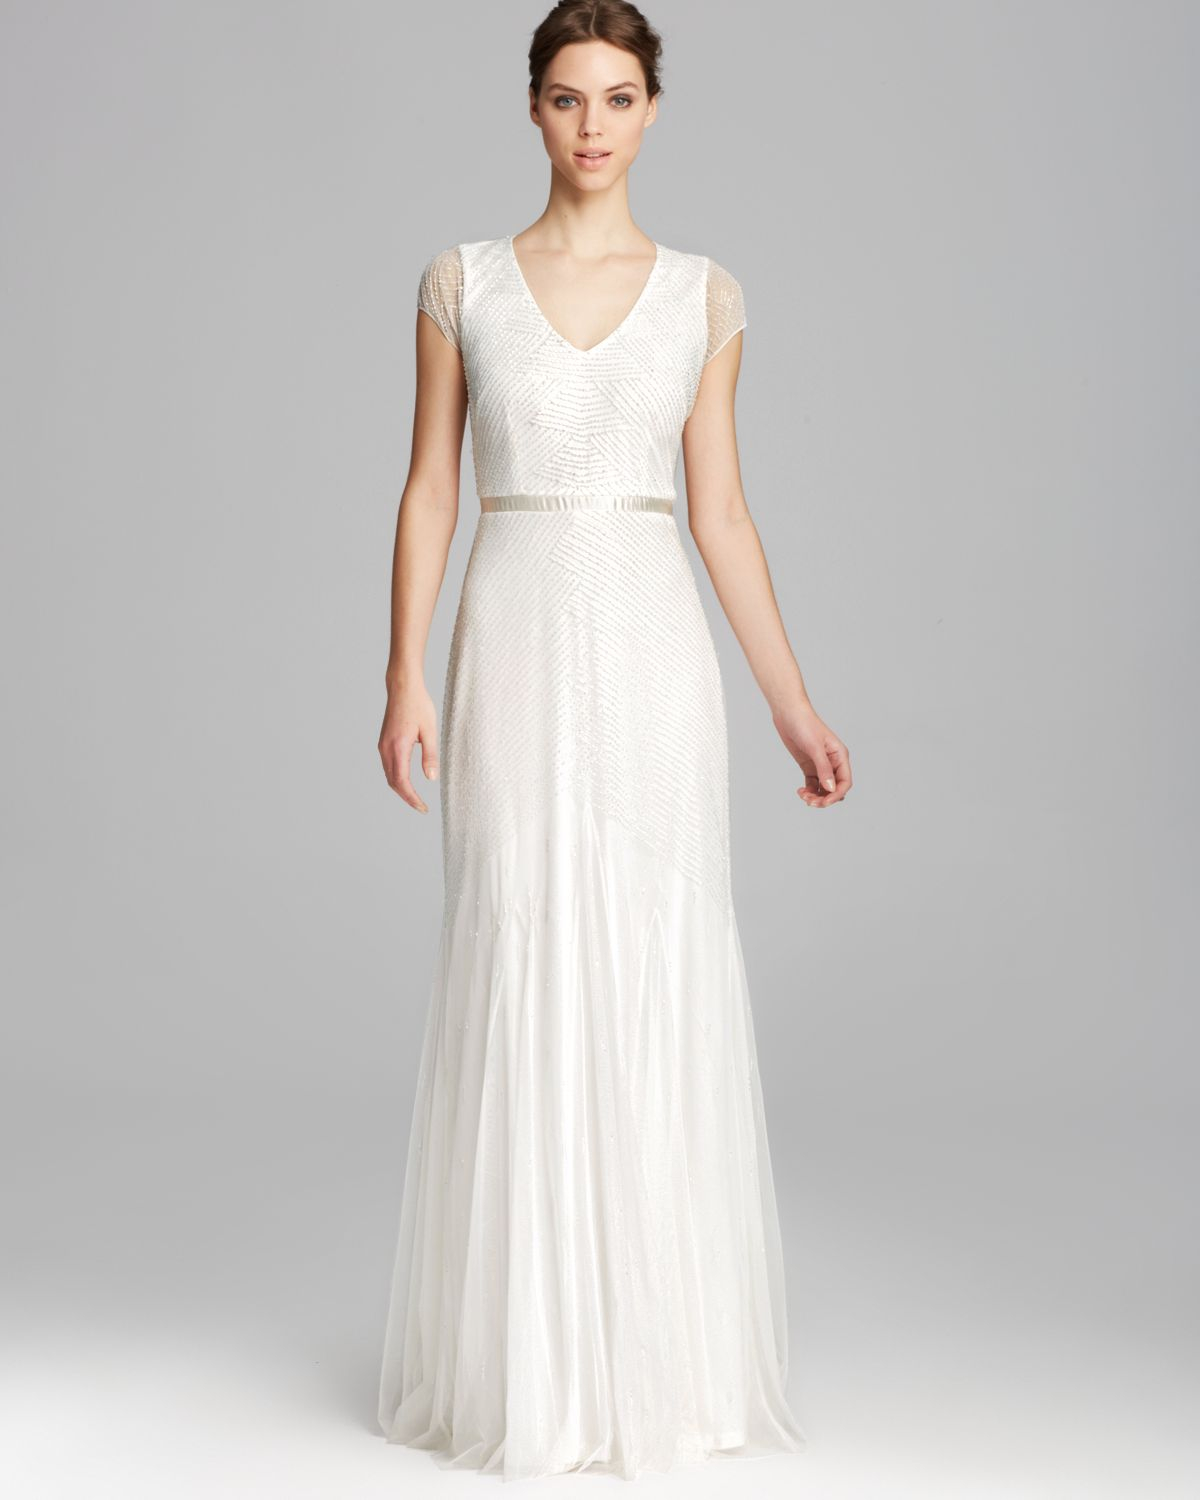 Lyst - Adrianna Papell Gown - Cap Sleeve V Neck Beaded in White